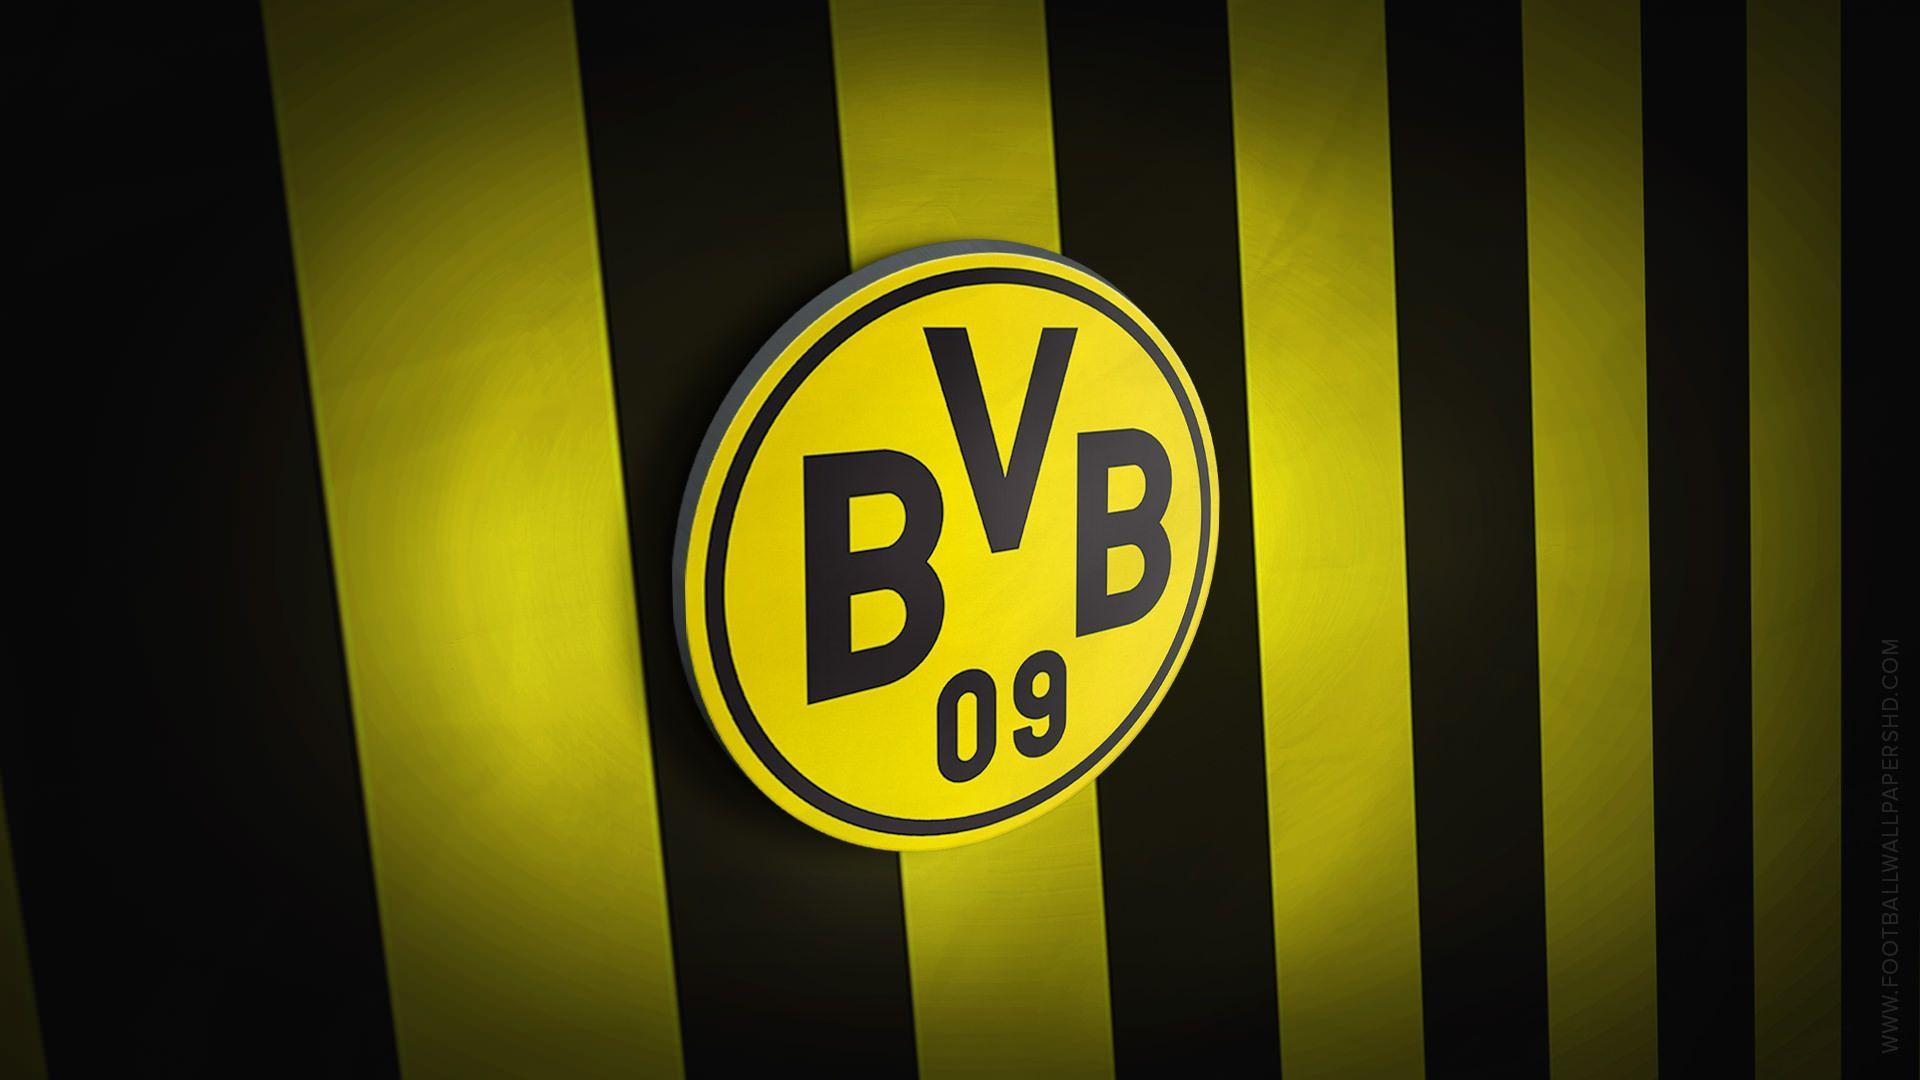 Fall Out Boy Android Wallpaper Borussia Dortmund Wallpapers Wallpaper Cave